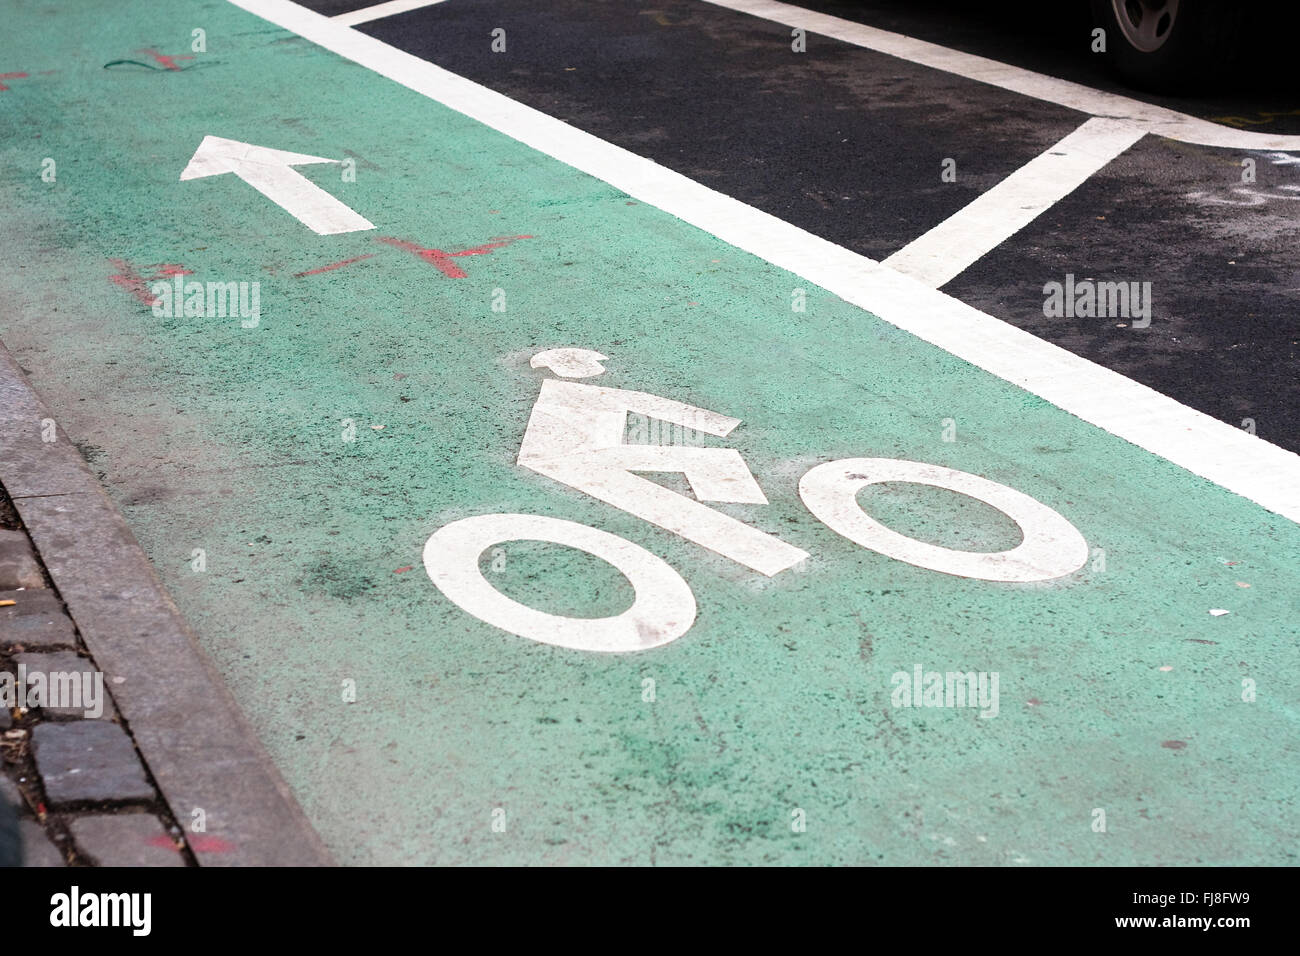 Green paint on road designating a dedicated bike lane with a bike rider symbol and arrow painted in white on ground - Stock Image